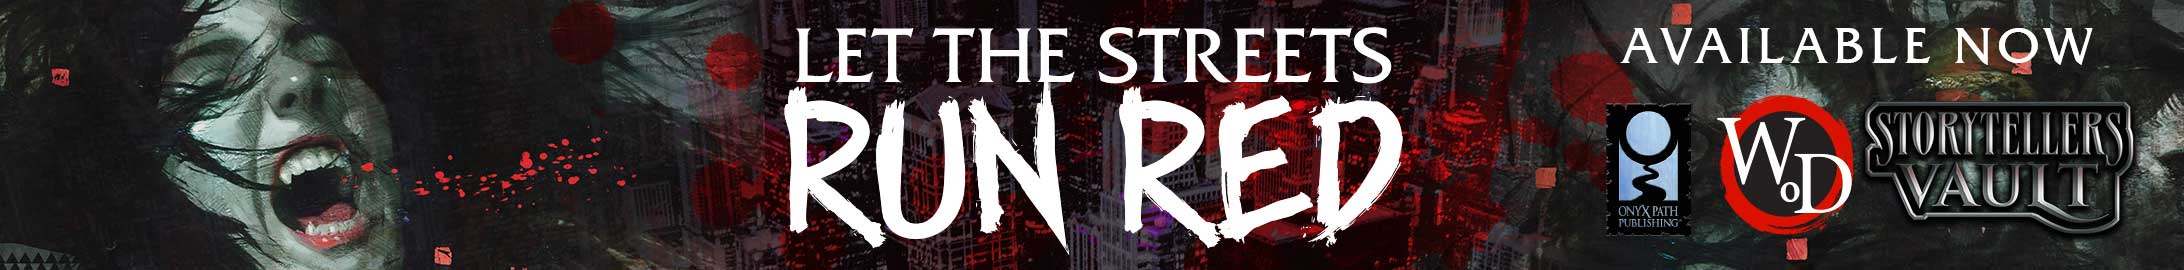 Let the Streets Run Red @ Storytellers Vault